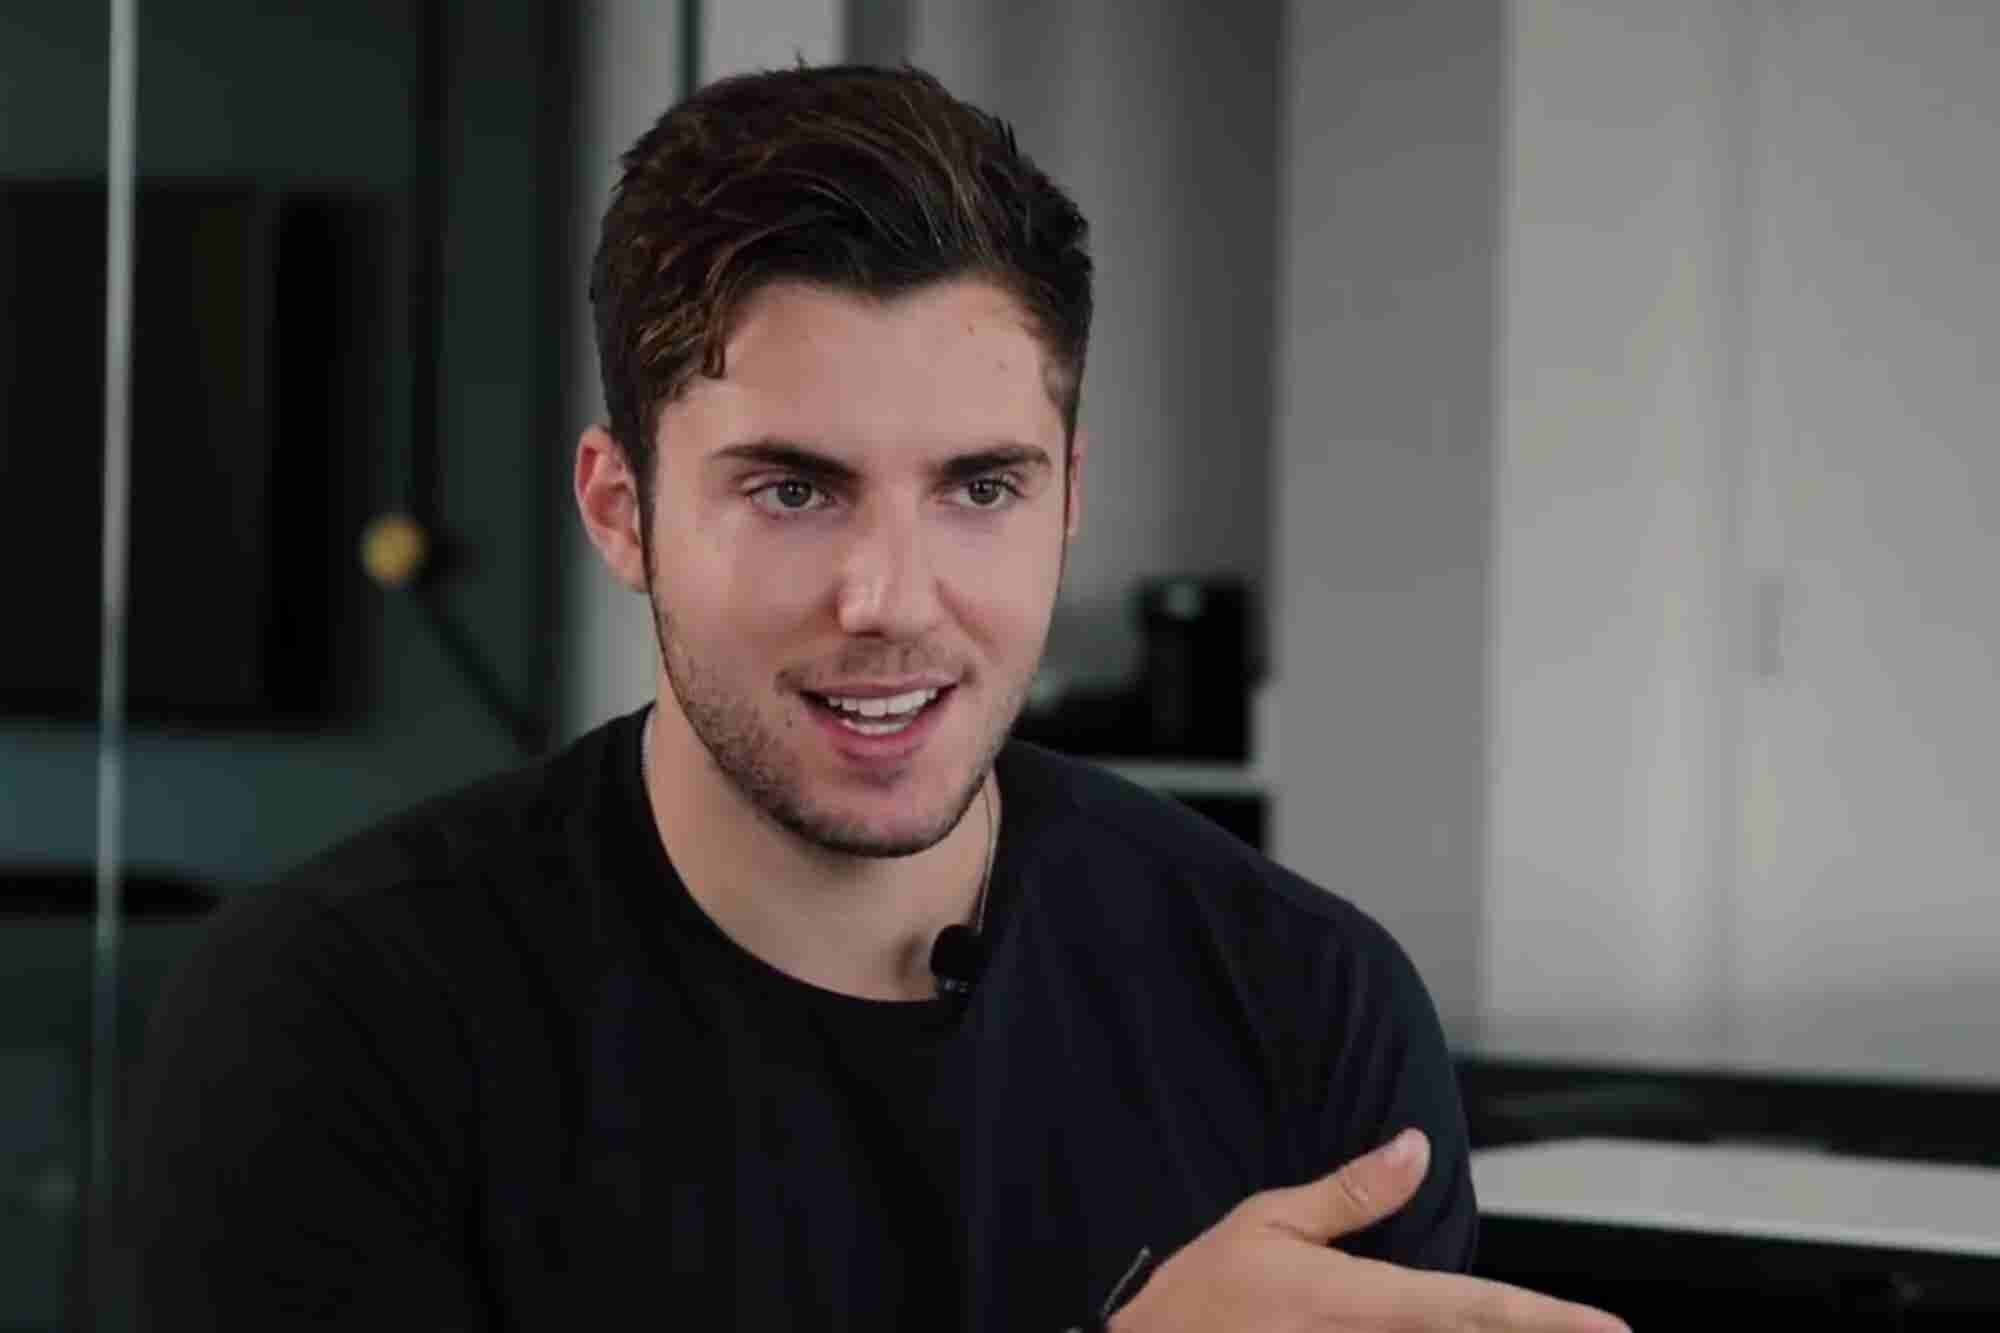 How This Influencer Overcame His Teenage Struggles to Become...